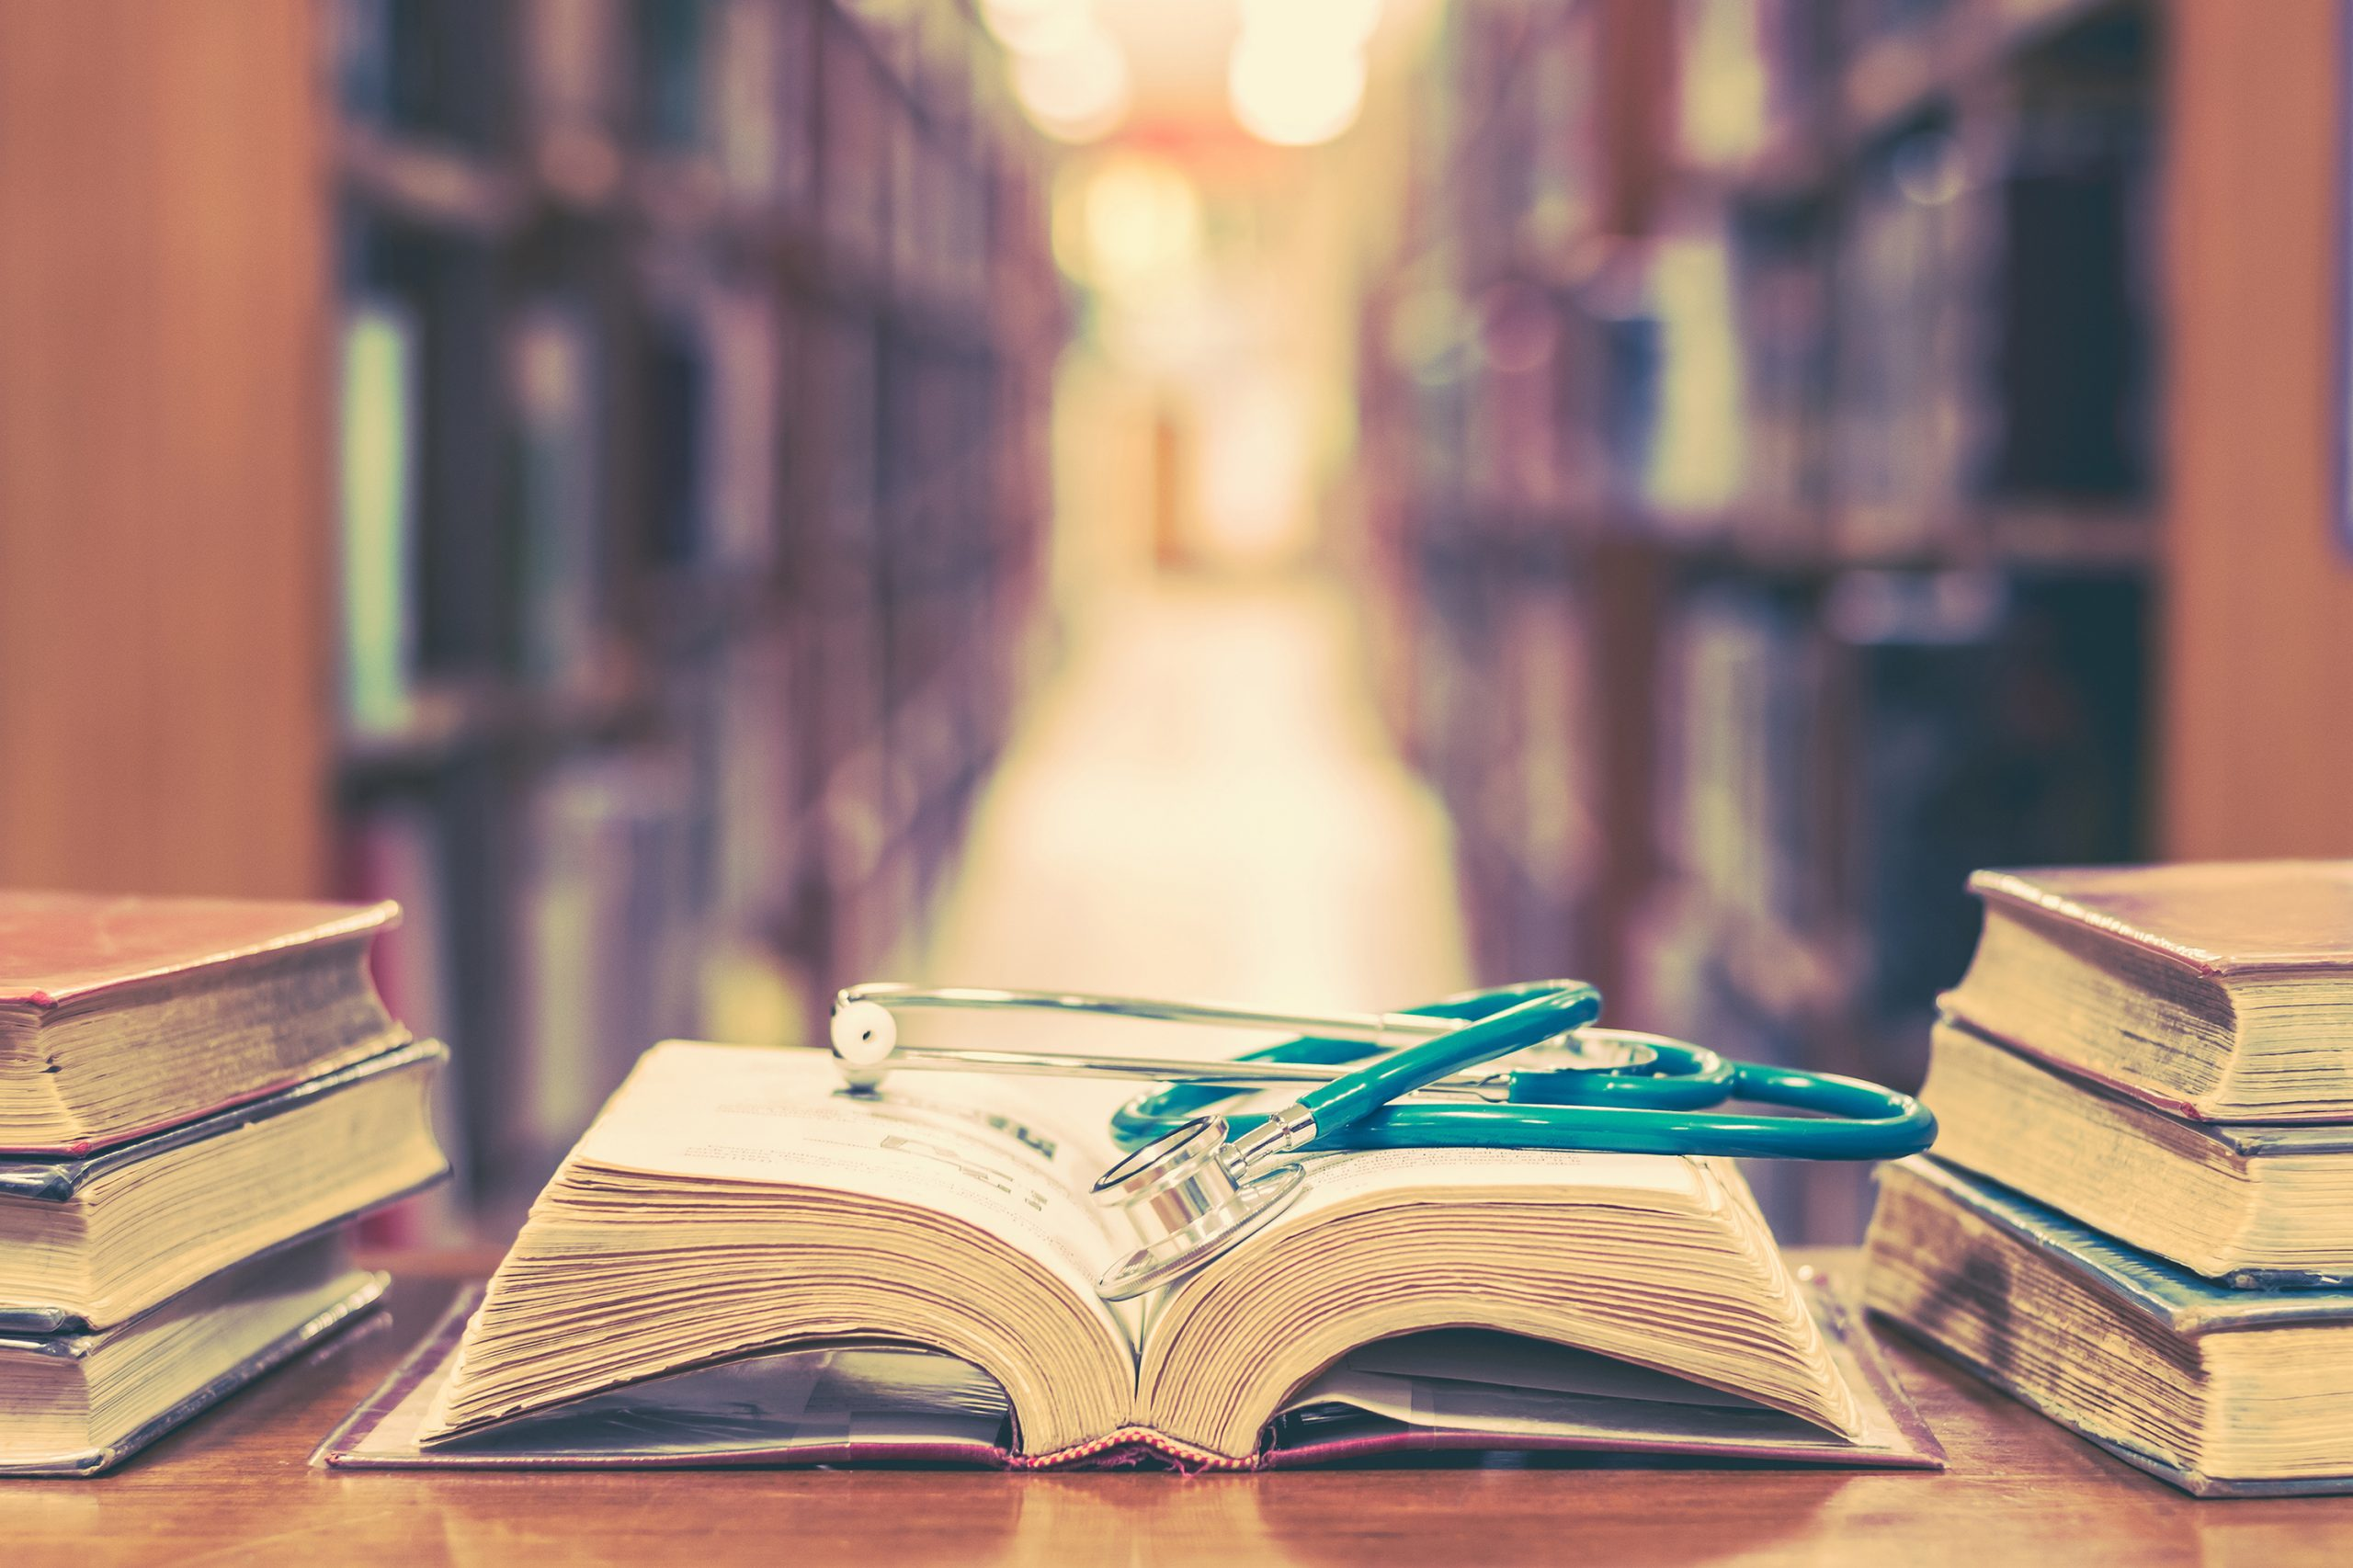 Old book in library with stethoscope on open textbook, stack piles of texts on reading desk, and aisle of bookshelves in  study class room background for medical school education learning concept